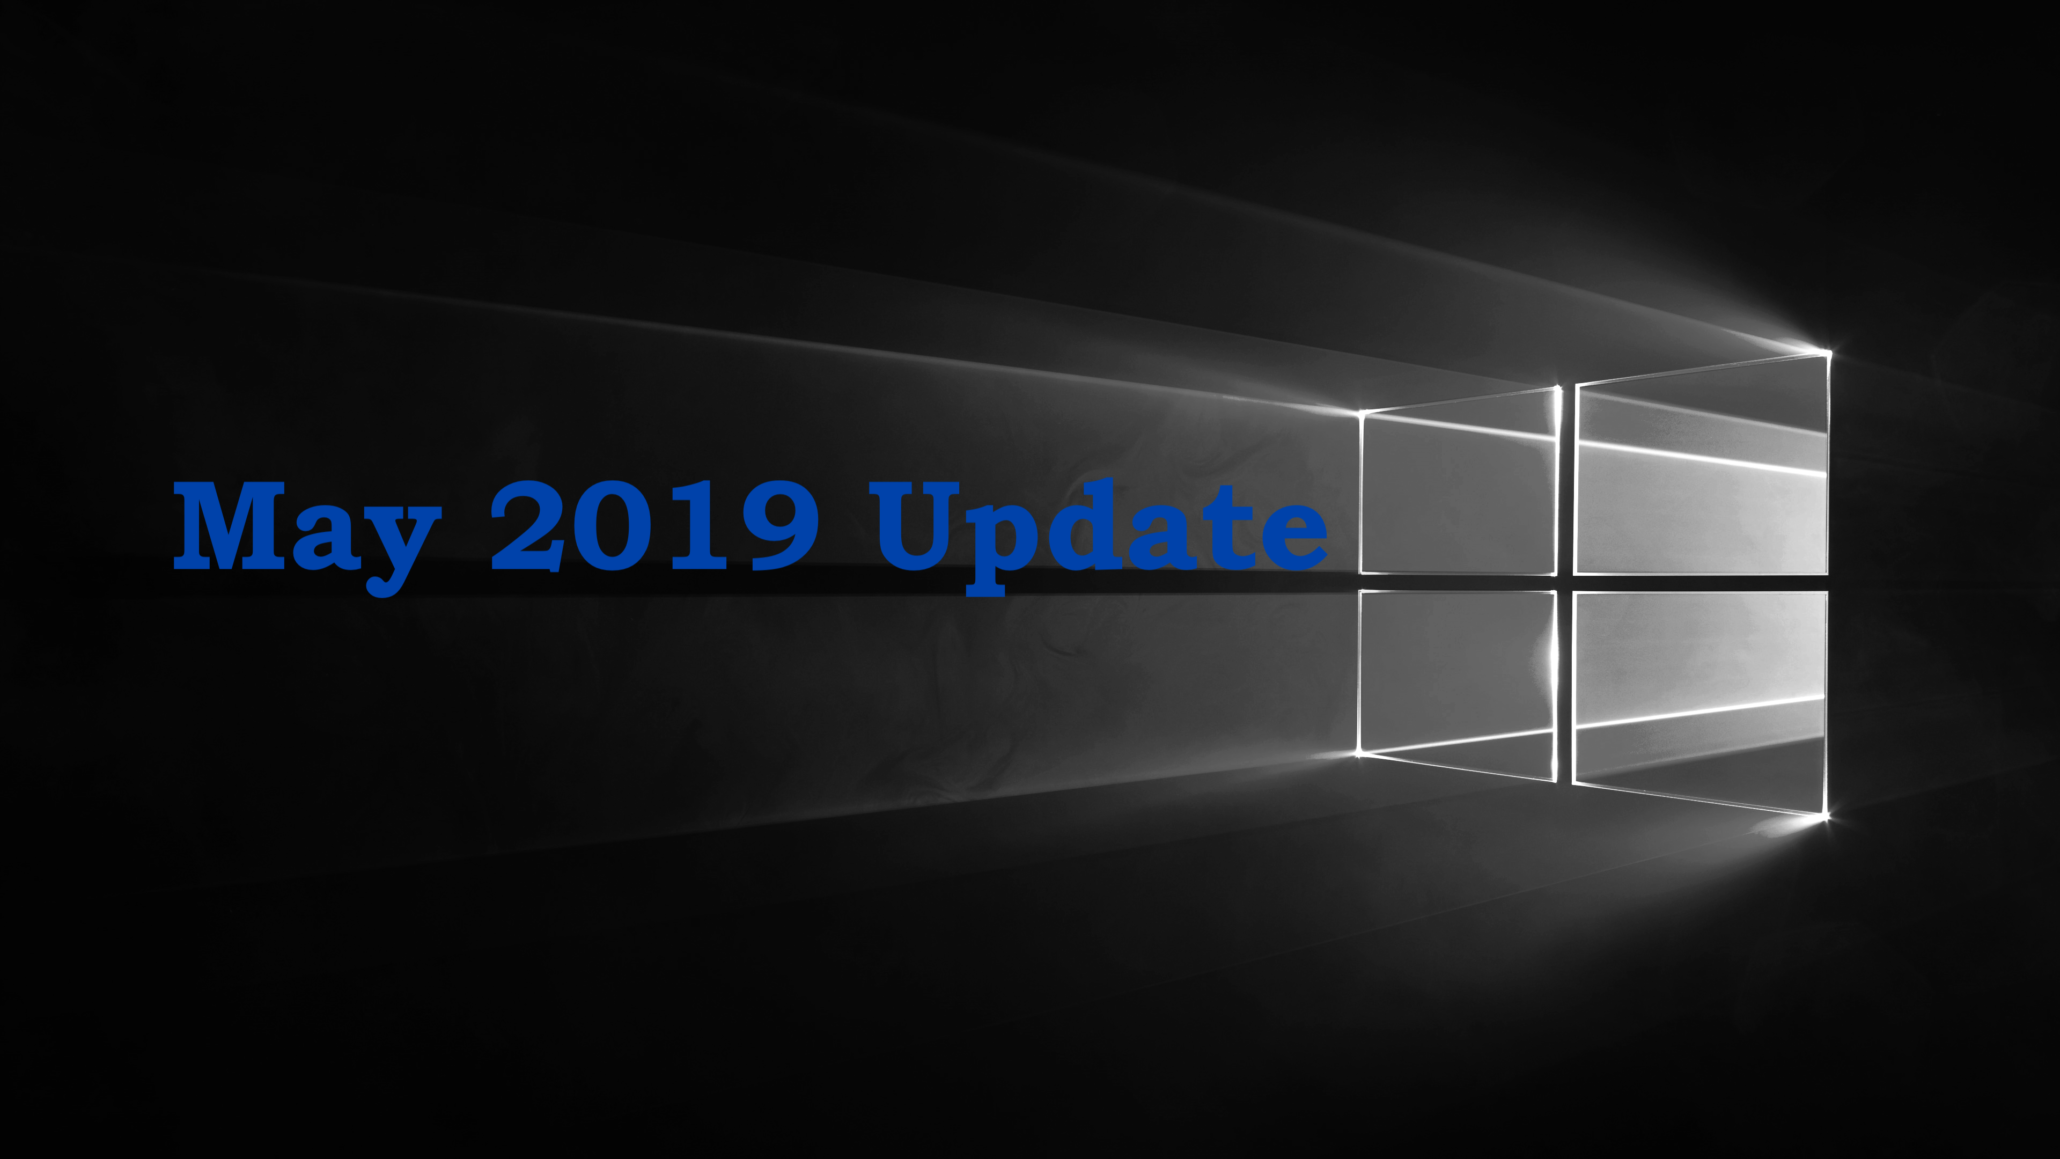 Potential Windows 10 May 2019 Update RTM Build 18362 30 Out for Slow